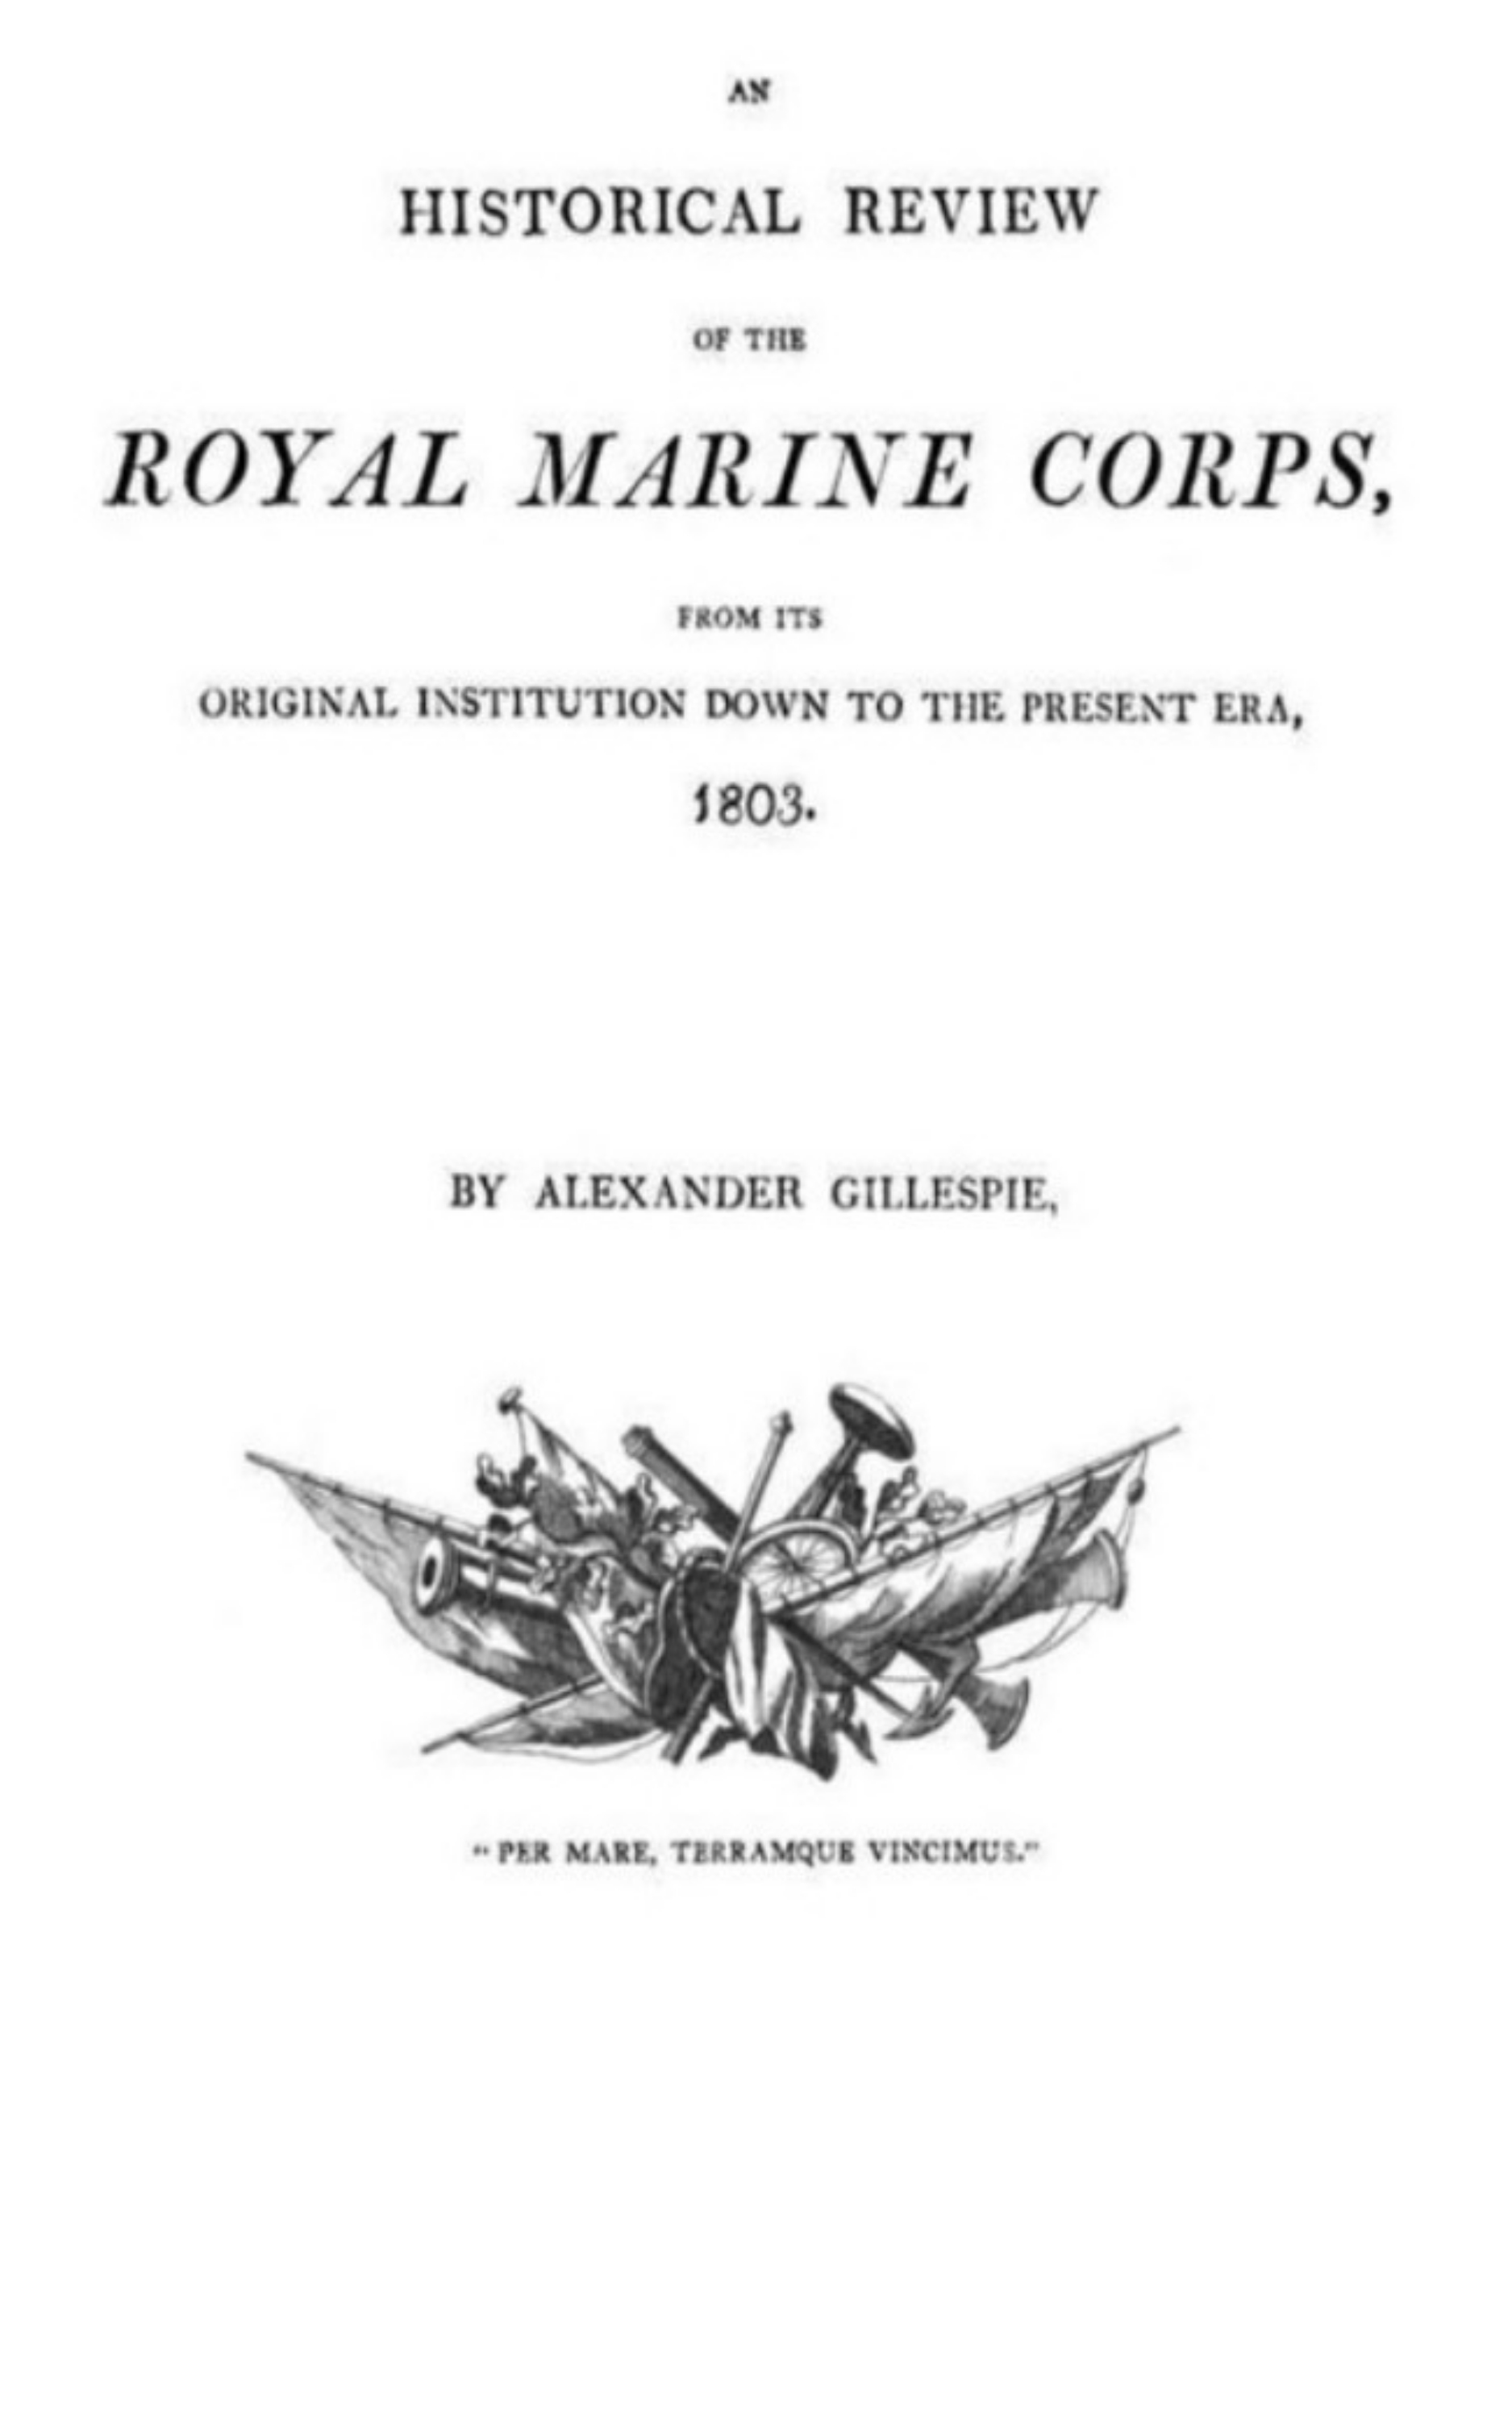 thailand silver the u s marine corps sniper badges ring Alexander Gillespie An historical Review of the Royal Marine Corps, from its Original Institution down to the Present Era, 1803